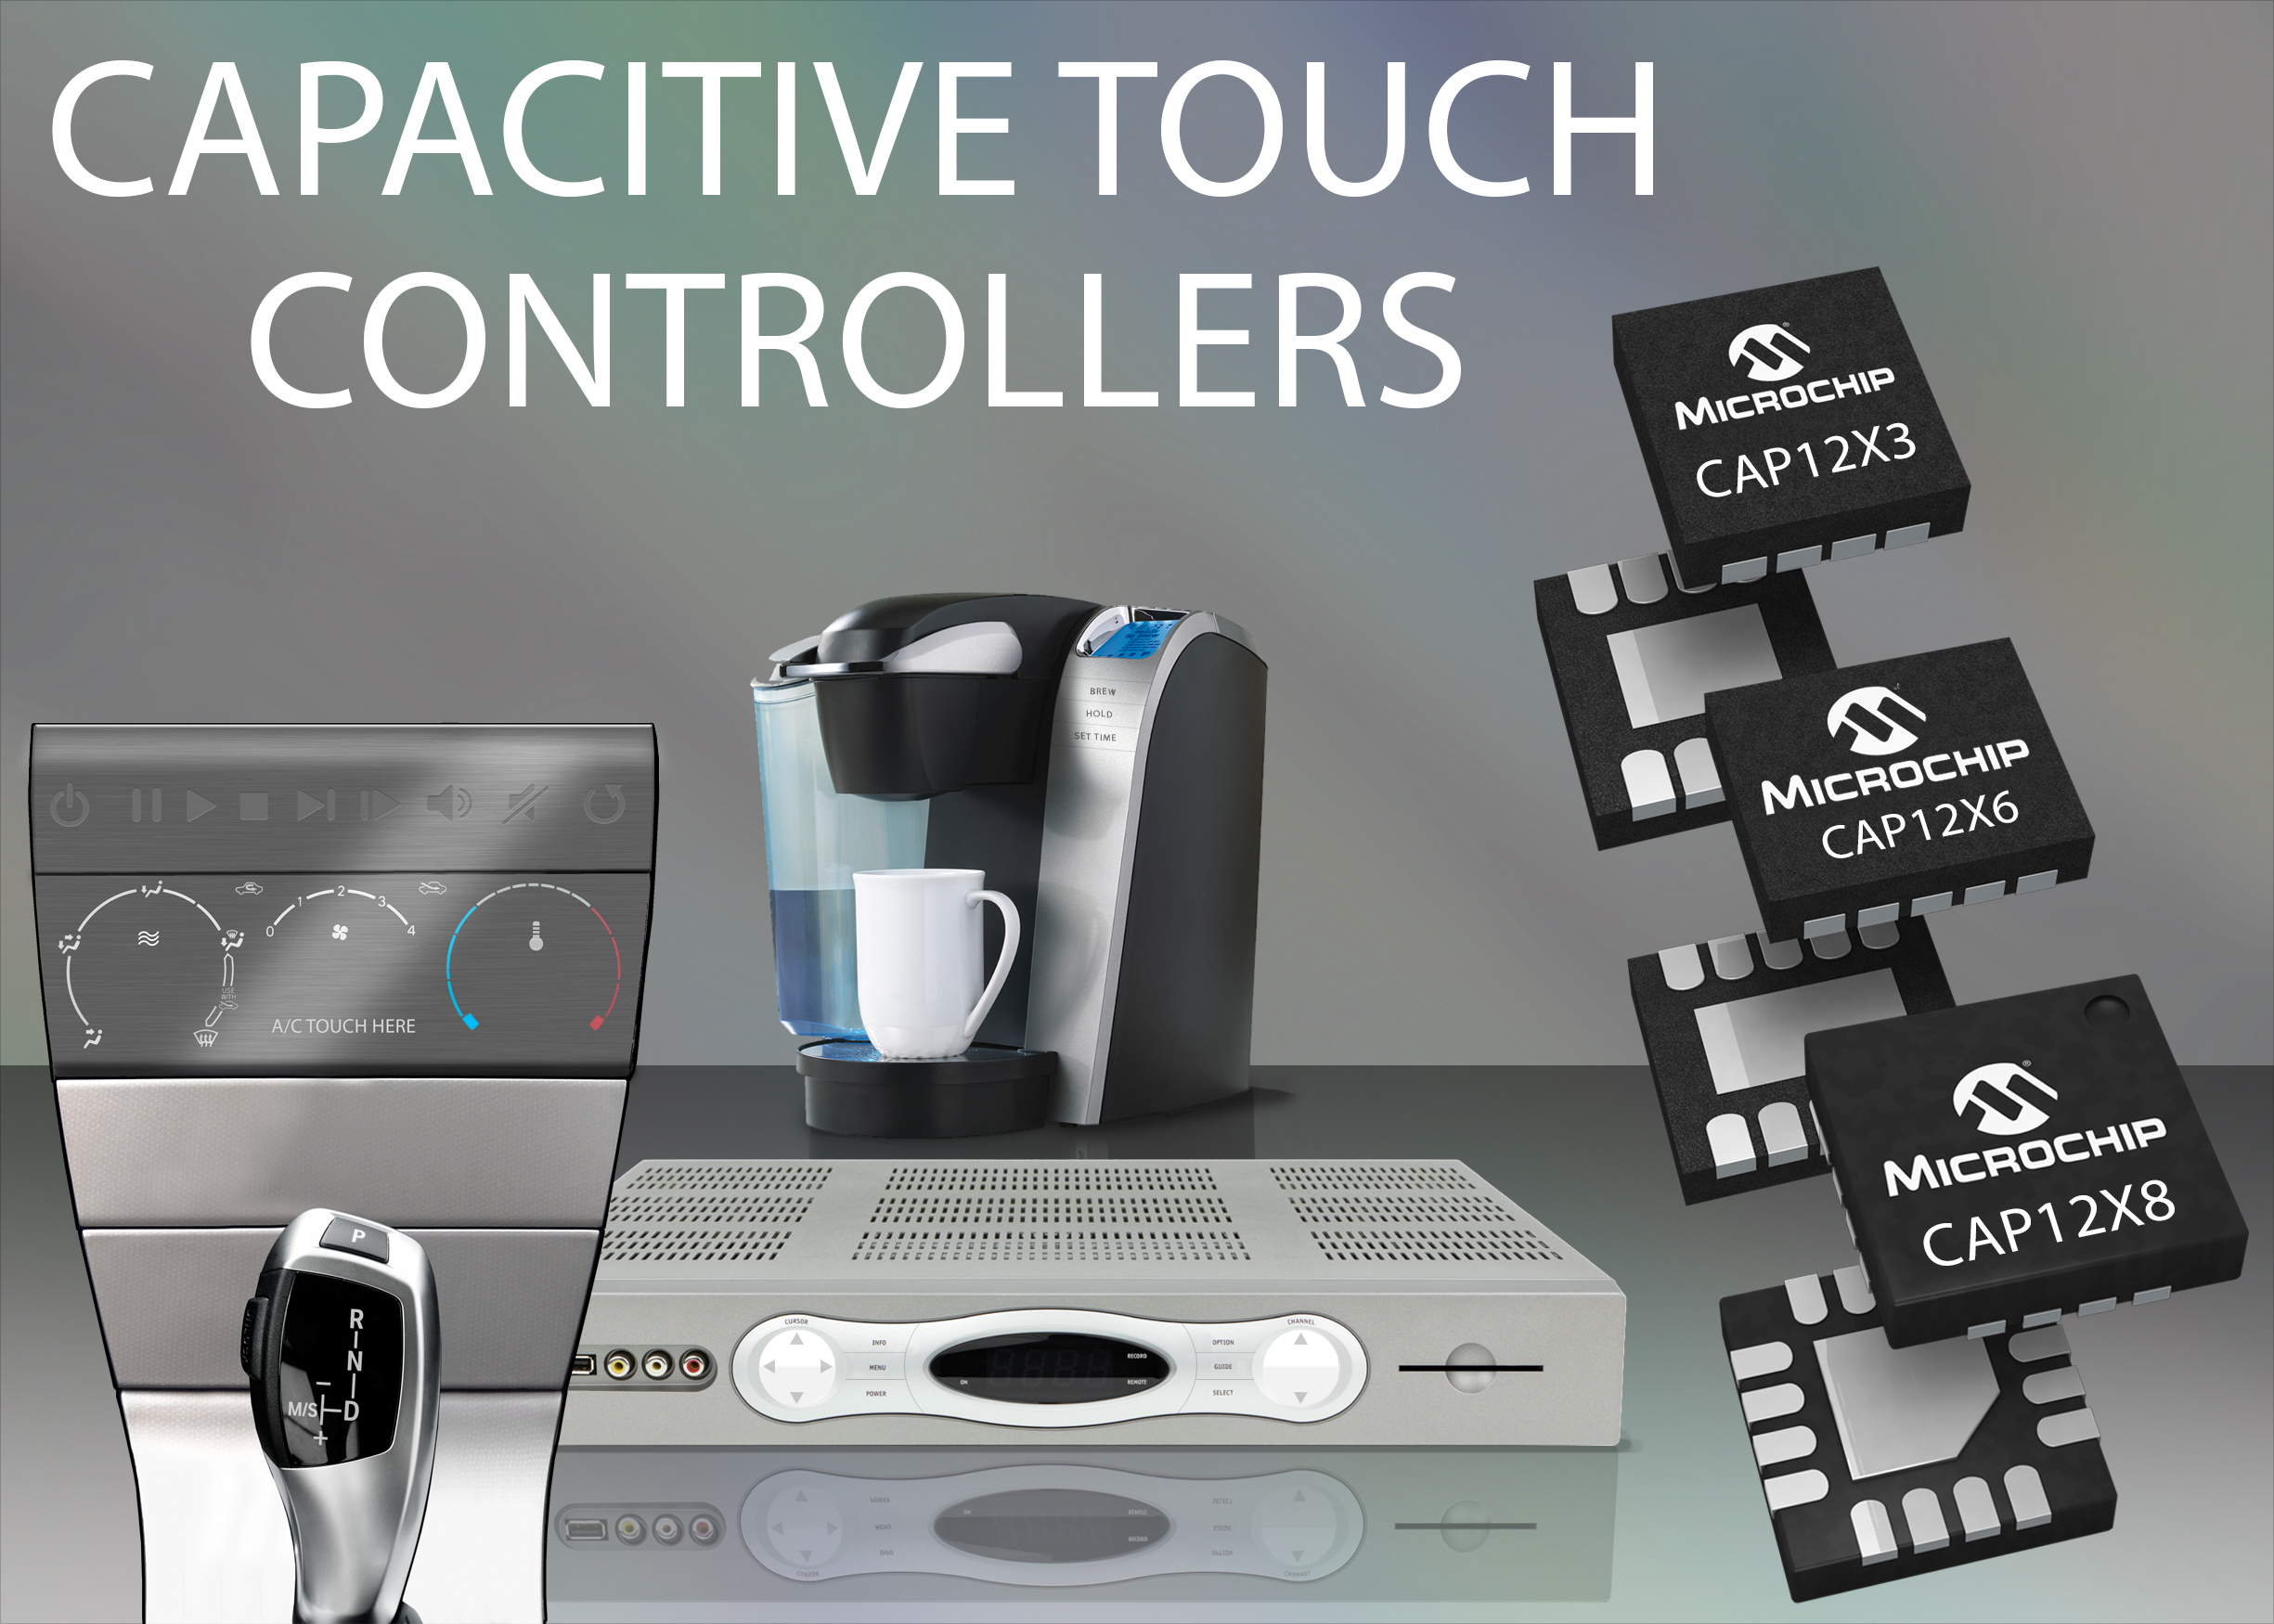 Microchip expands capacitive-touch control portfolio with a robust turnkey solution